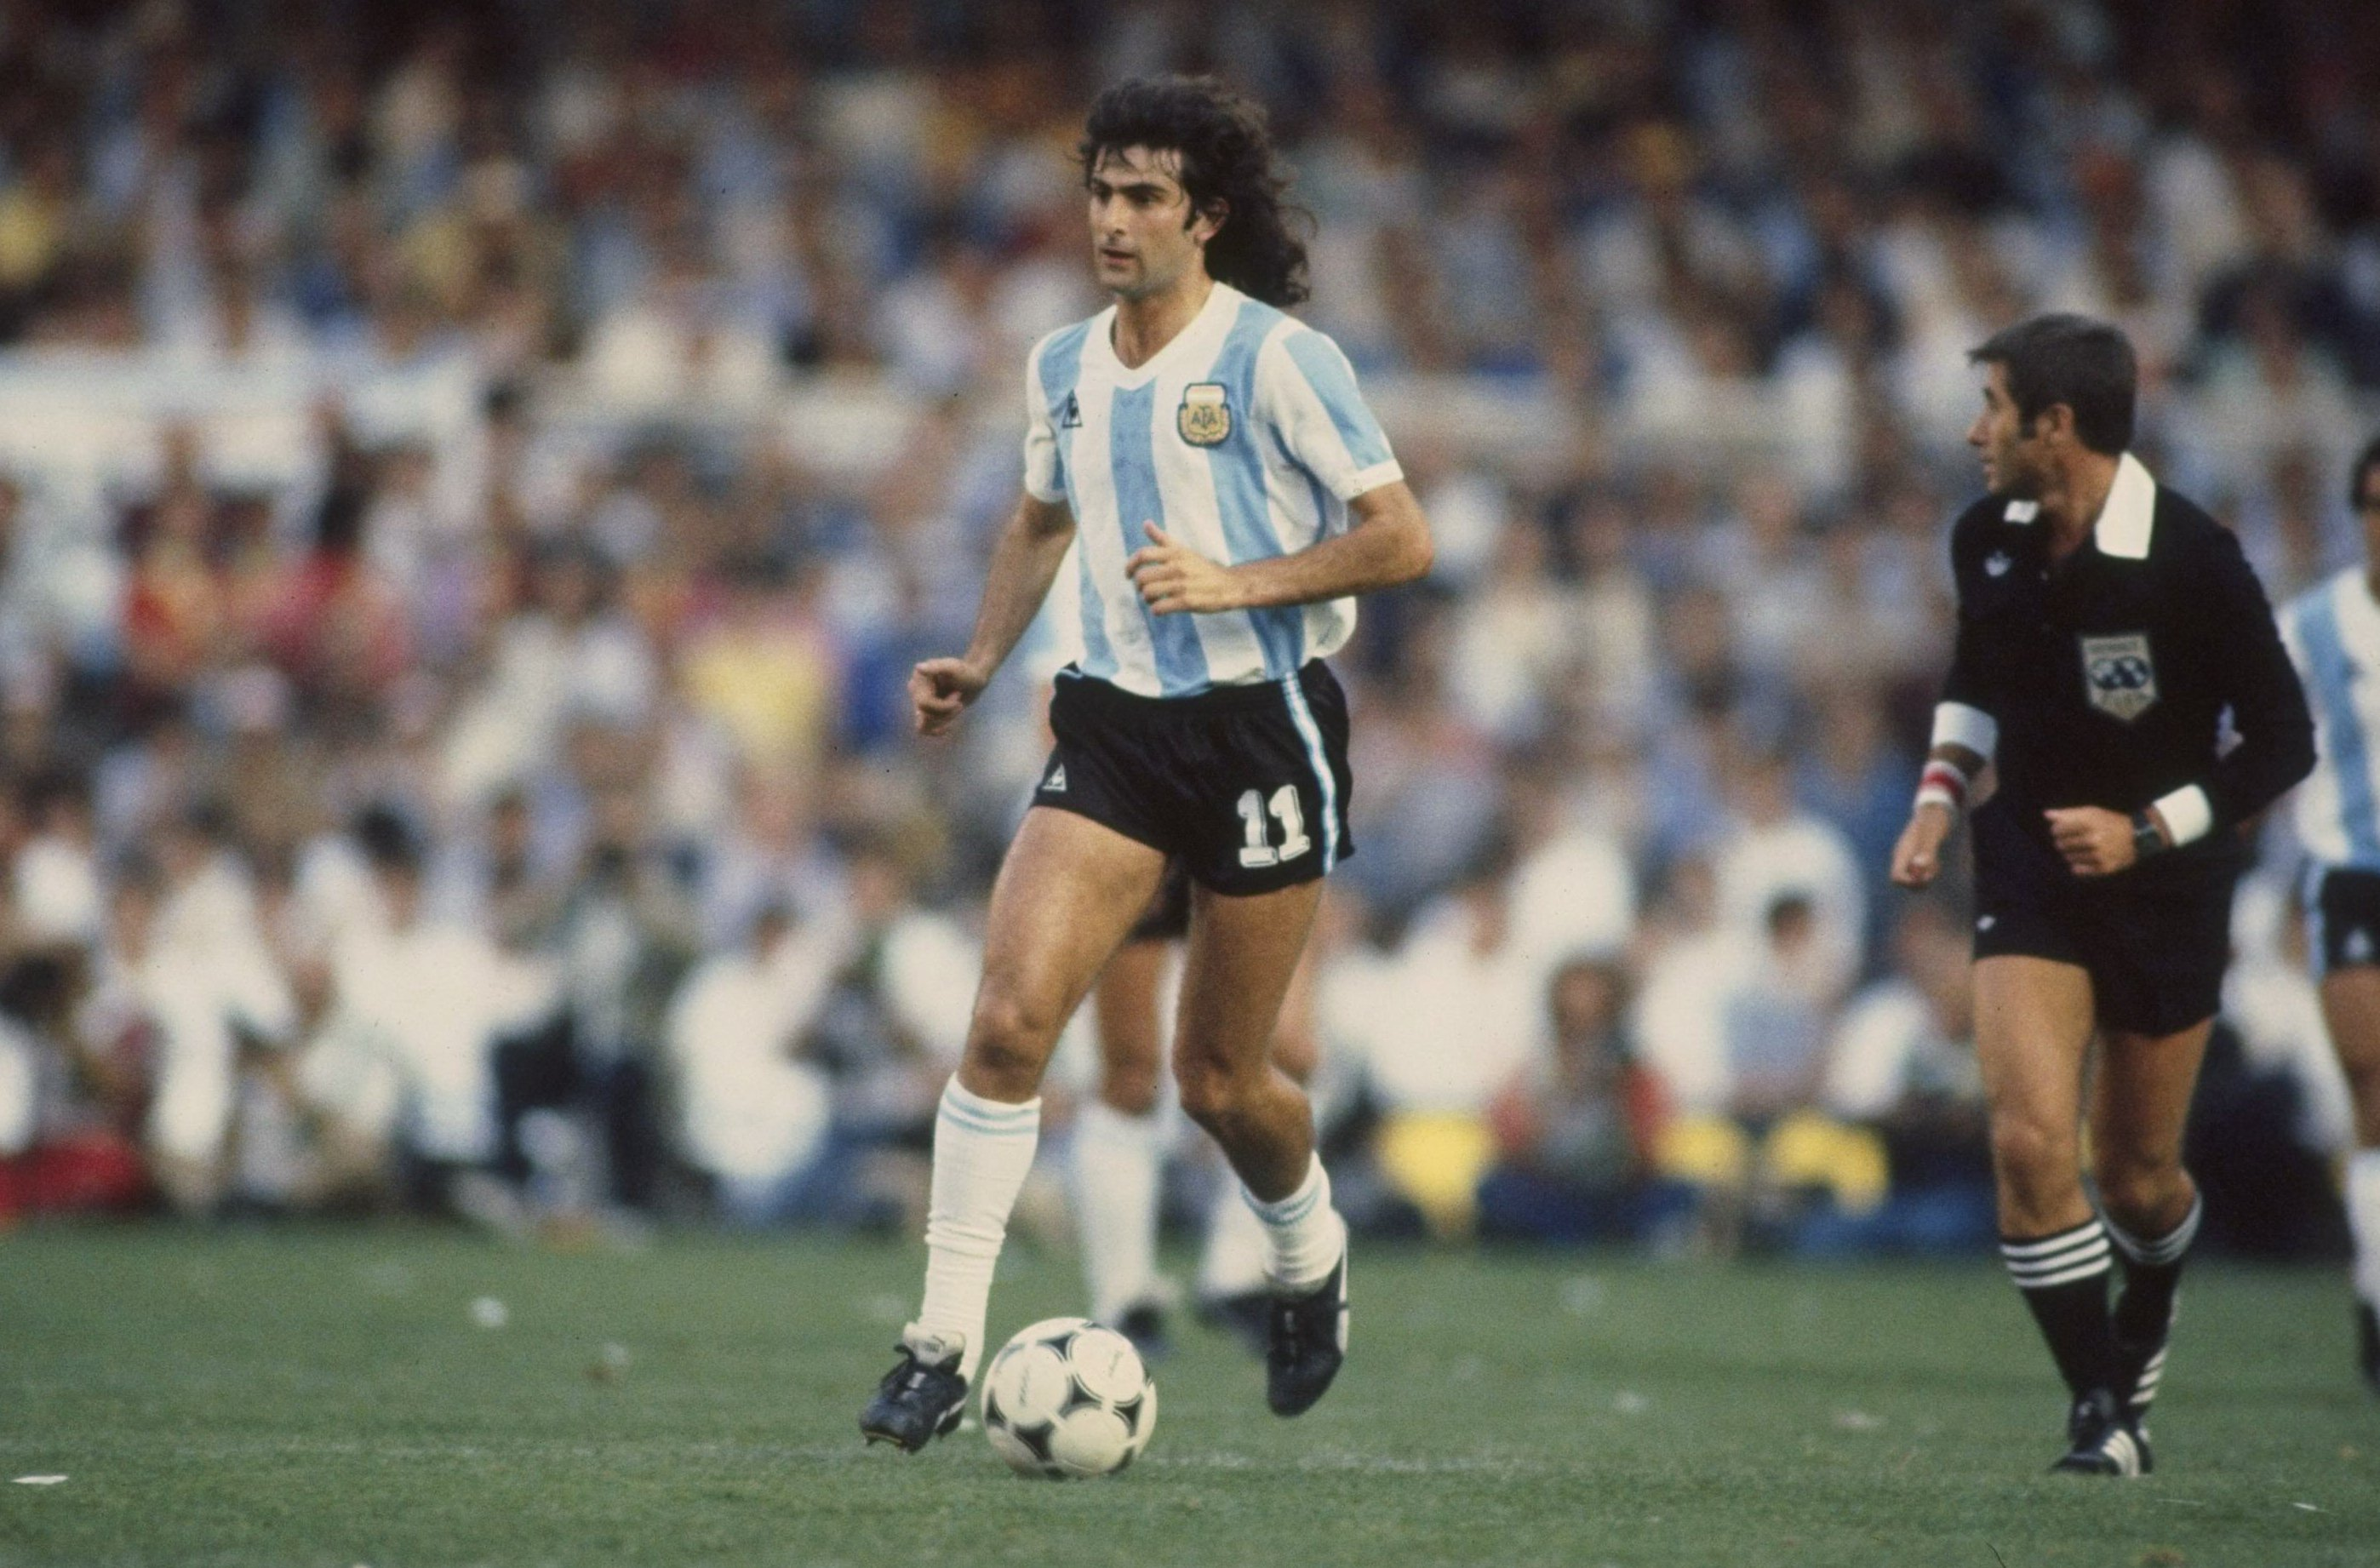 Aug 1978:  Mario Kempes of Argentina in action during the world cup match against Belgium in Buenos Aries, Argentina. Mandatory Credit: Steve Powell/Allsport